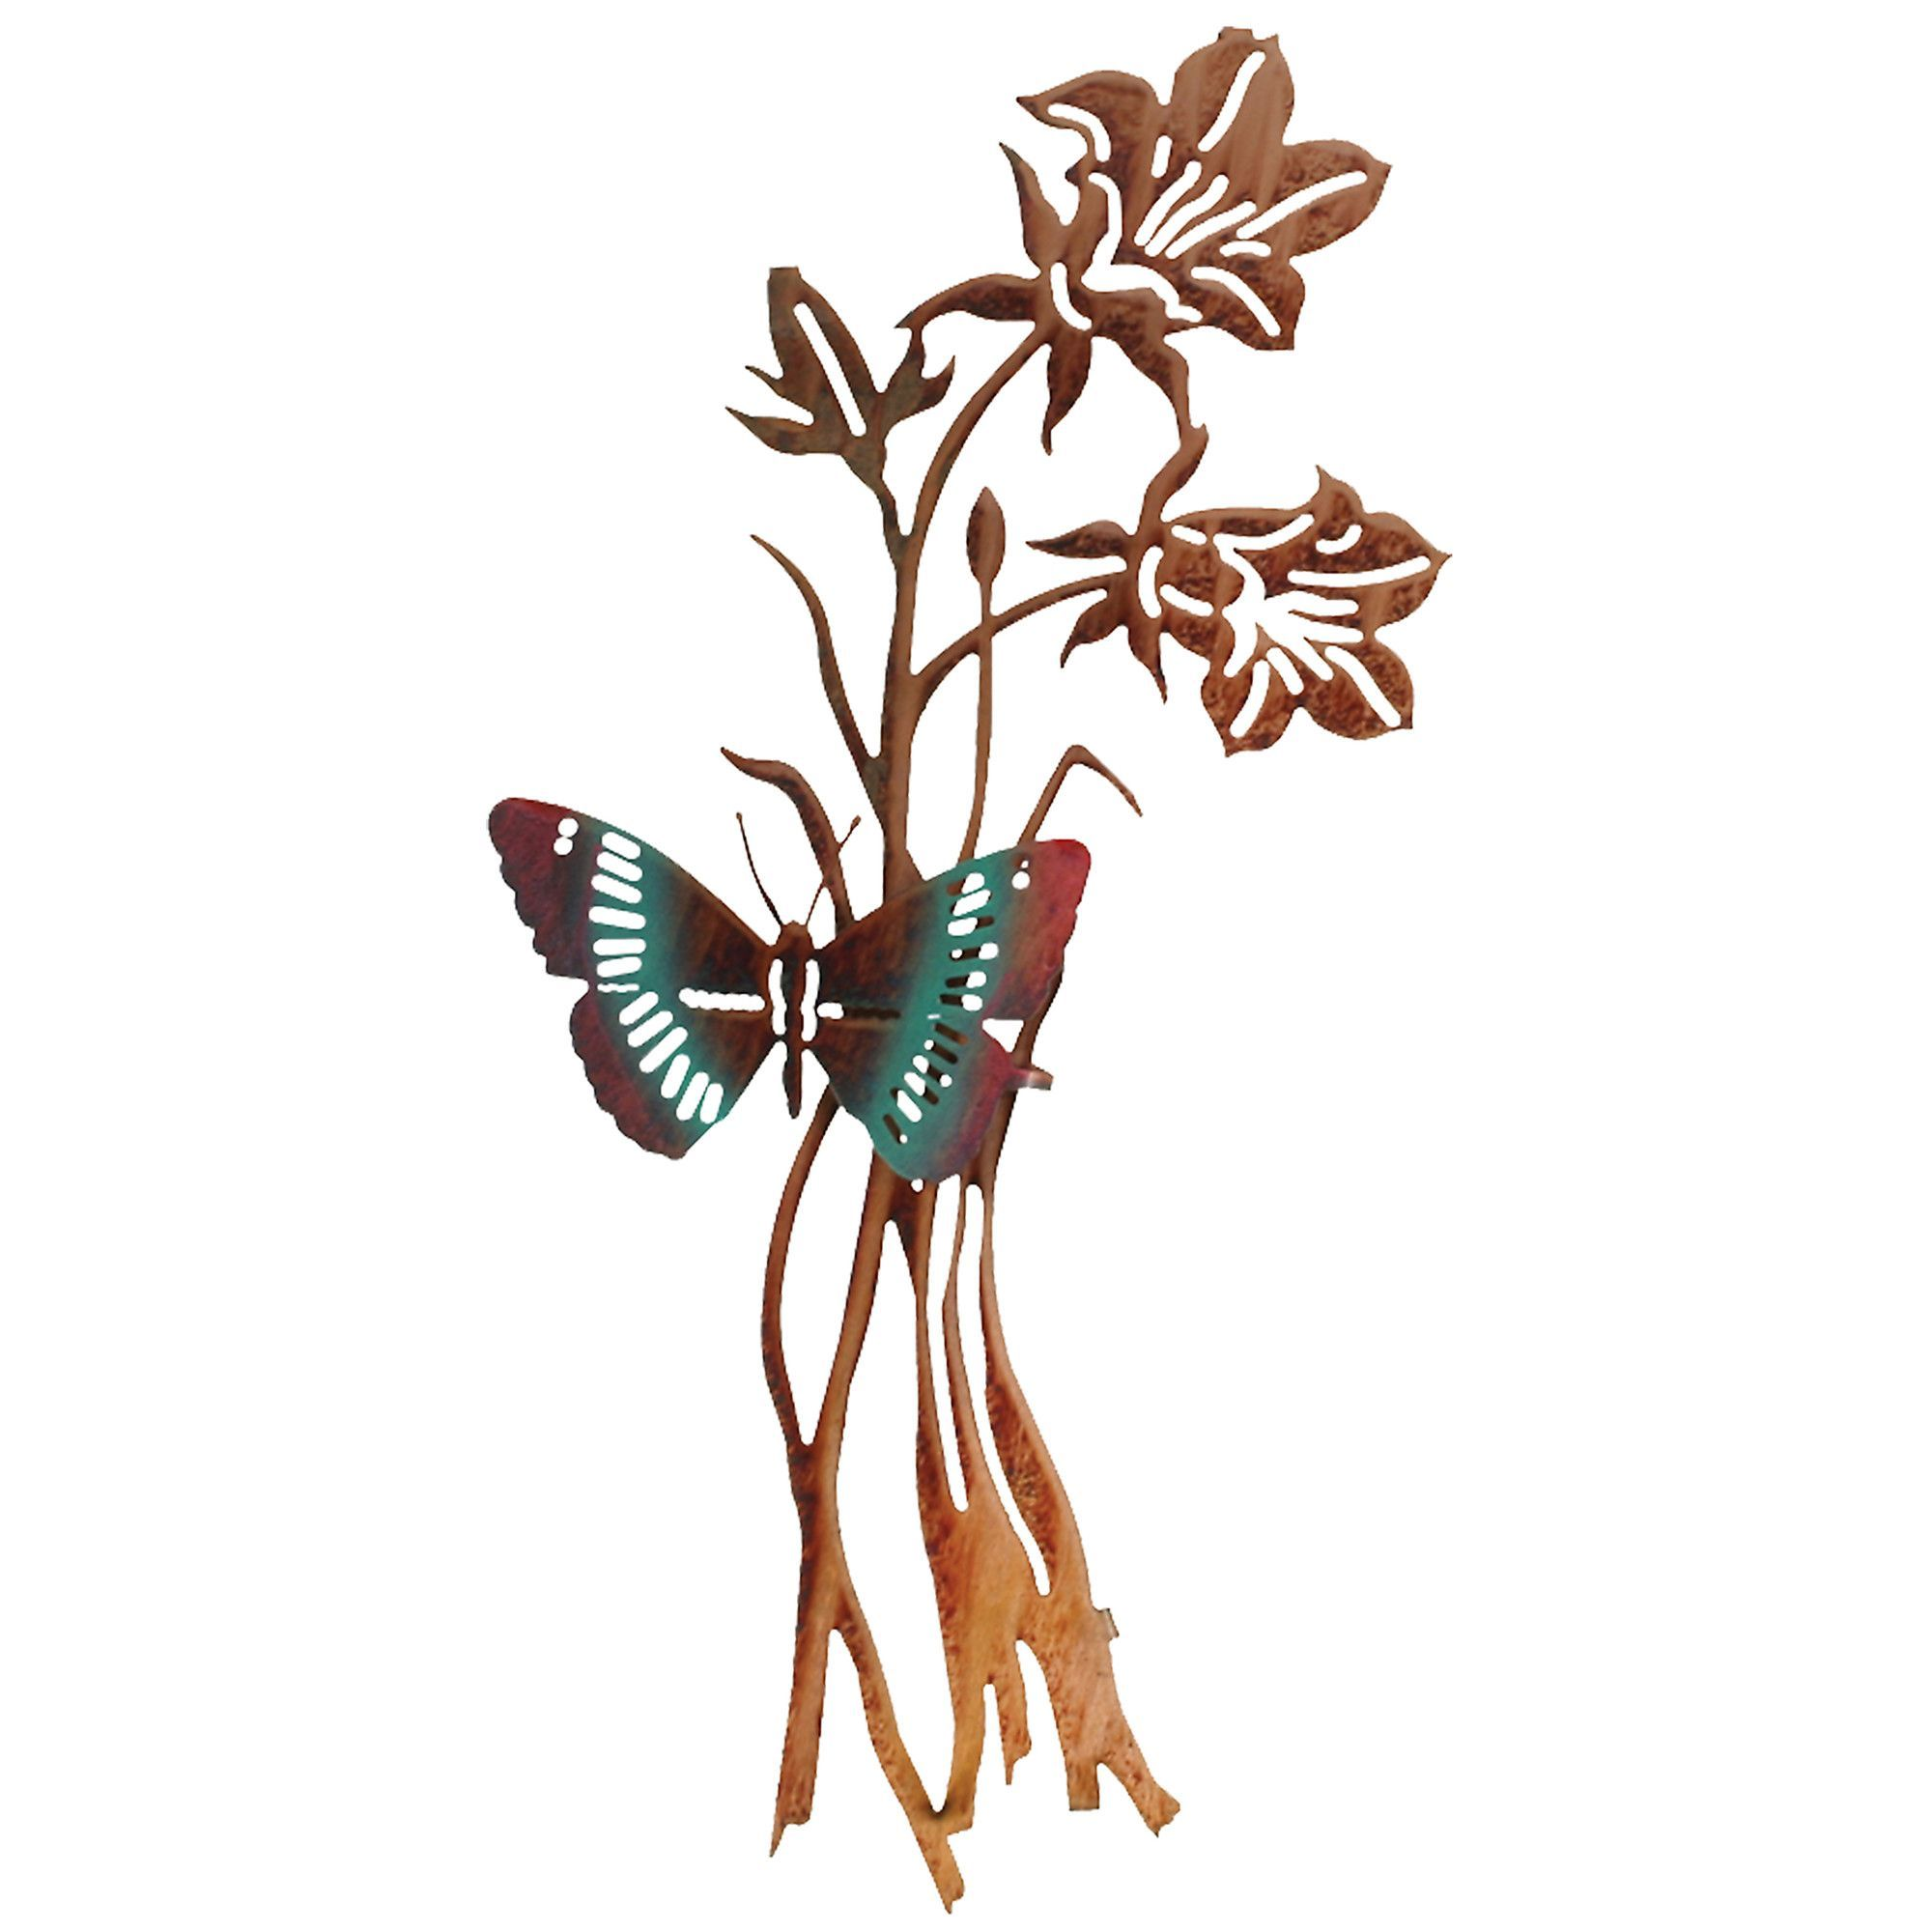 3D Butterfly and Flowers Wall Decor                                                                                                                                                     More